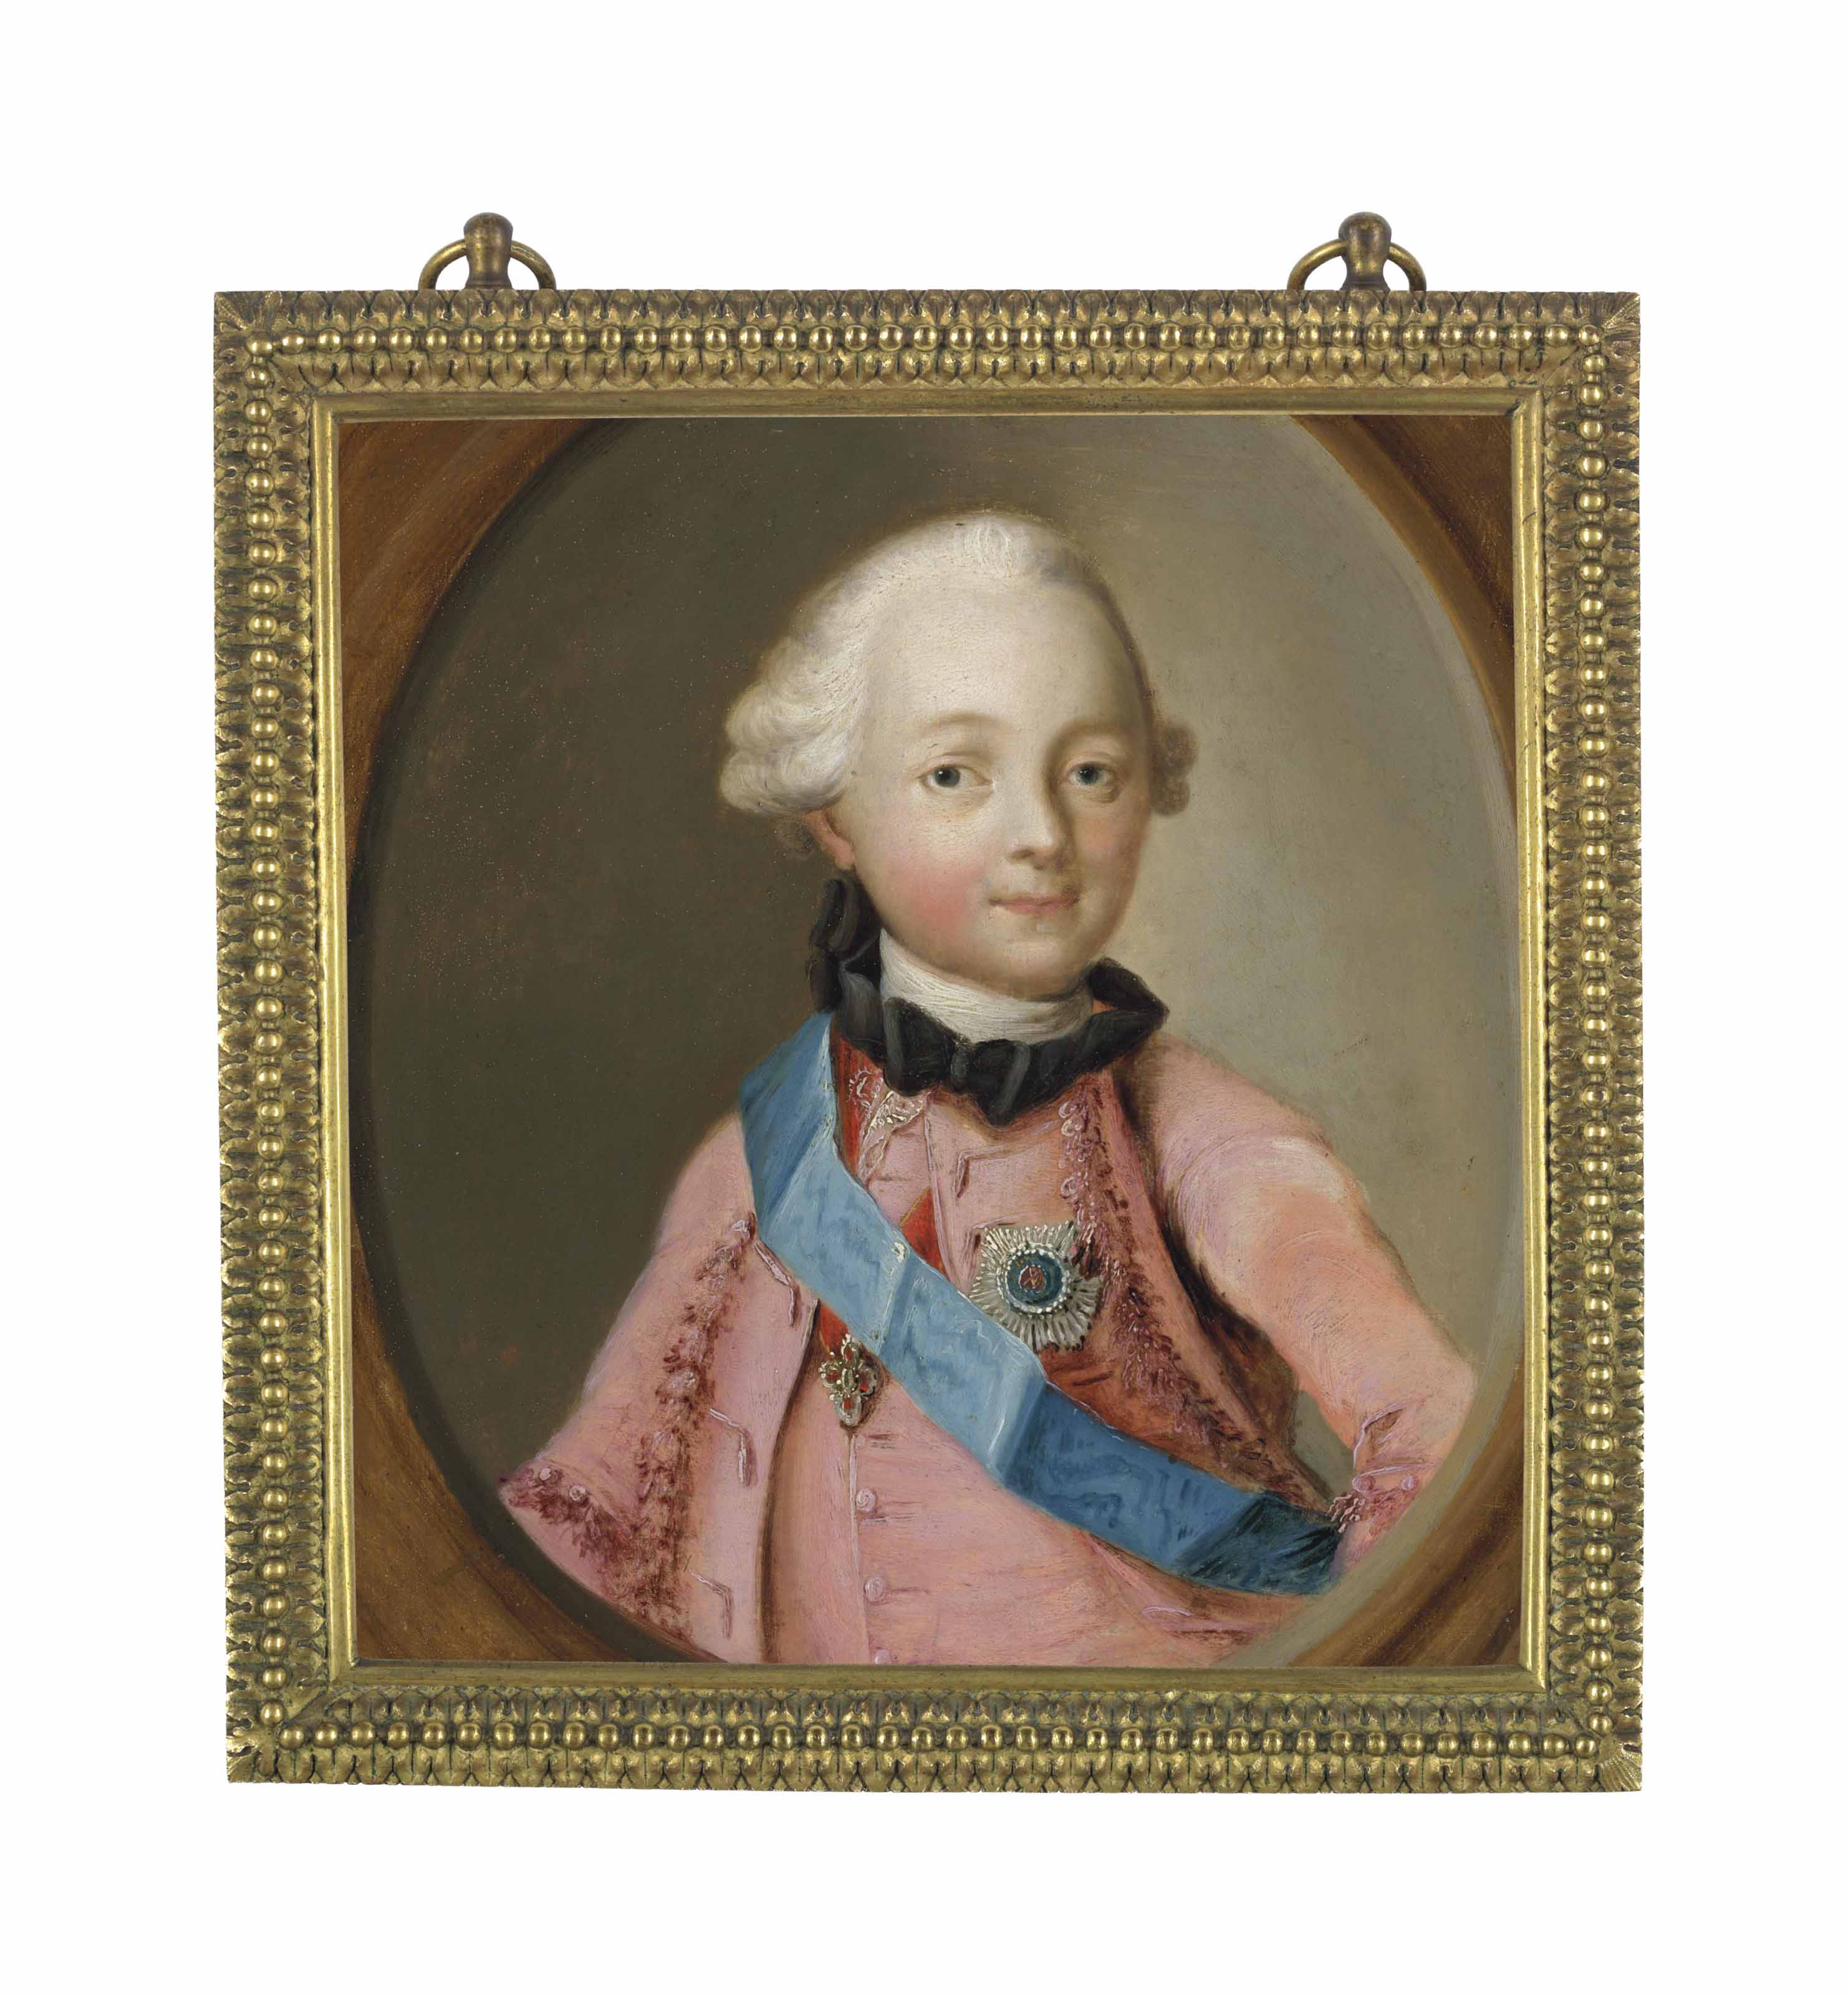 Portrait of Grand Duke Paul Petrovich, later Emperor Paul I of Russia (1754-1801), half-length, en deuil, in a pink coat, wearing the blue sash and star of the Order of Saint Andrew the First-Called, and the cross of the Order of Saint Anne